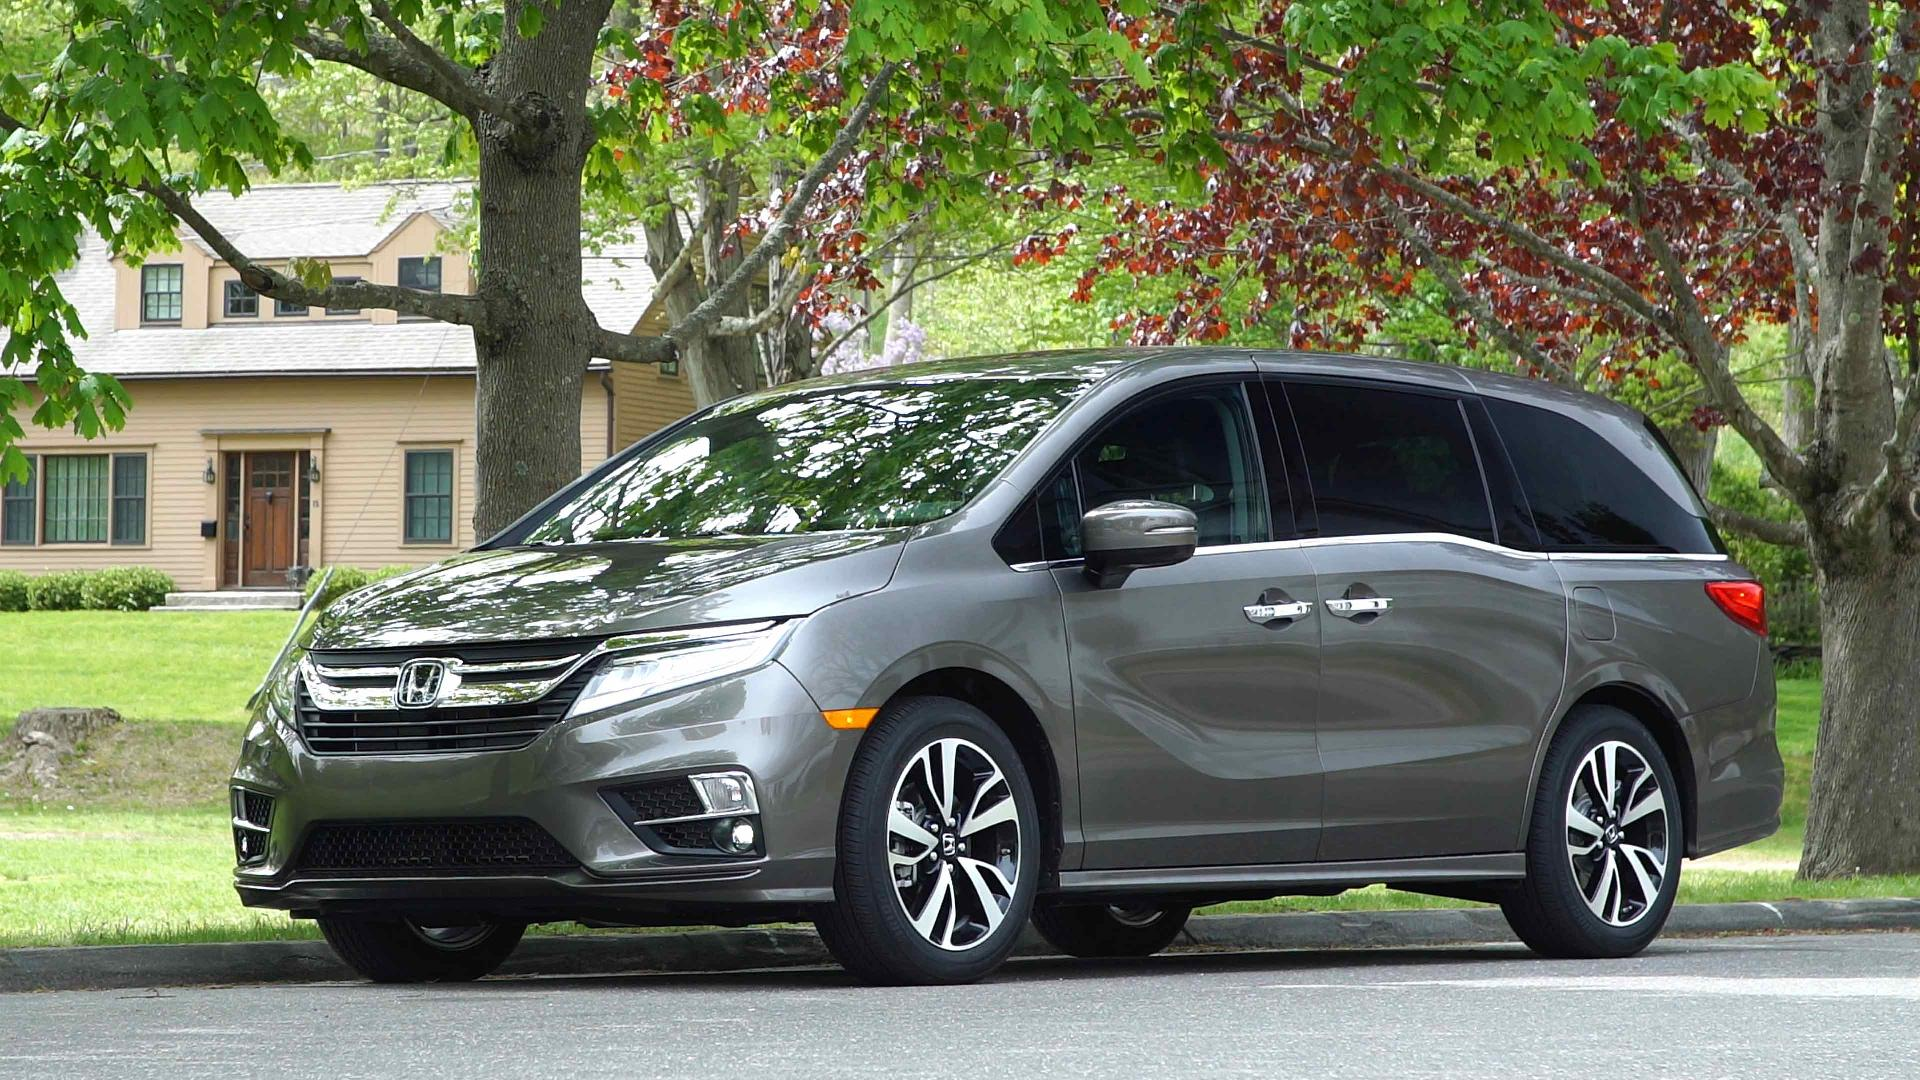 2018 Honda Odyssey Is Designed for Epic Road Trips Consumer Reports